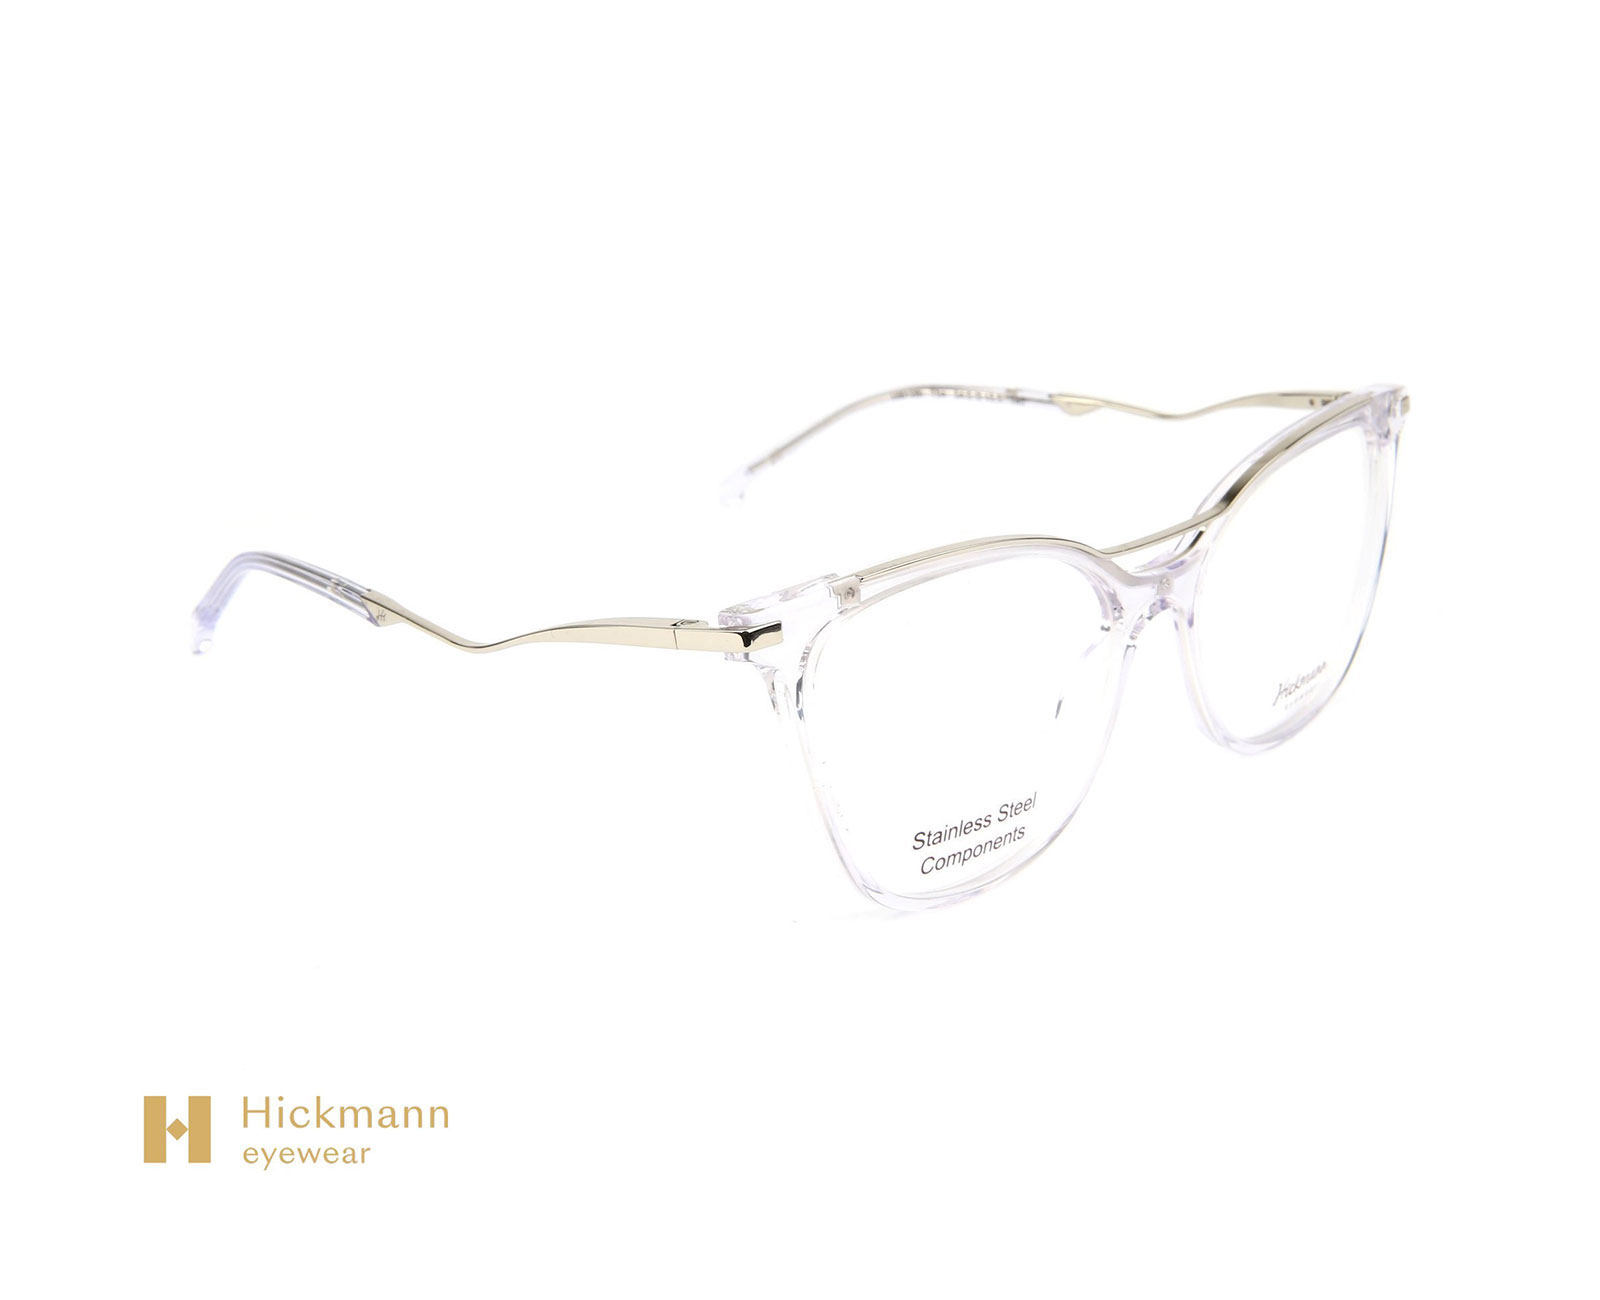 Hickmann Eyewear HI6128 in Transparent White